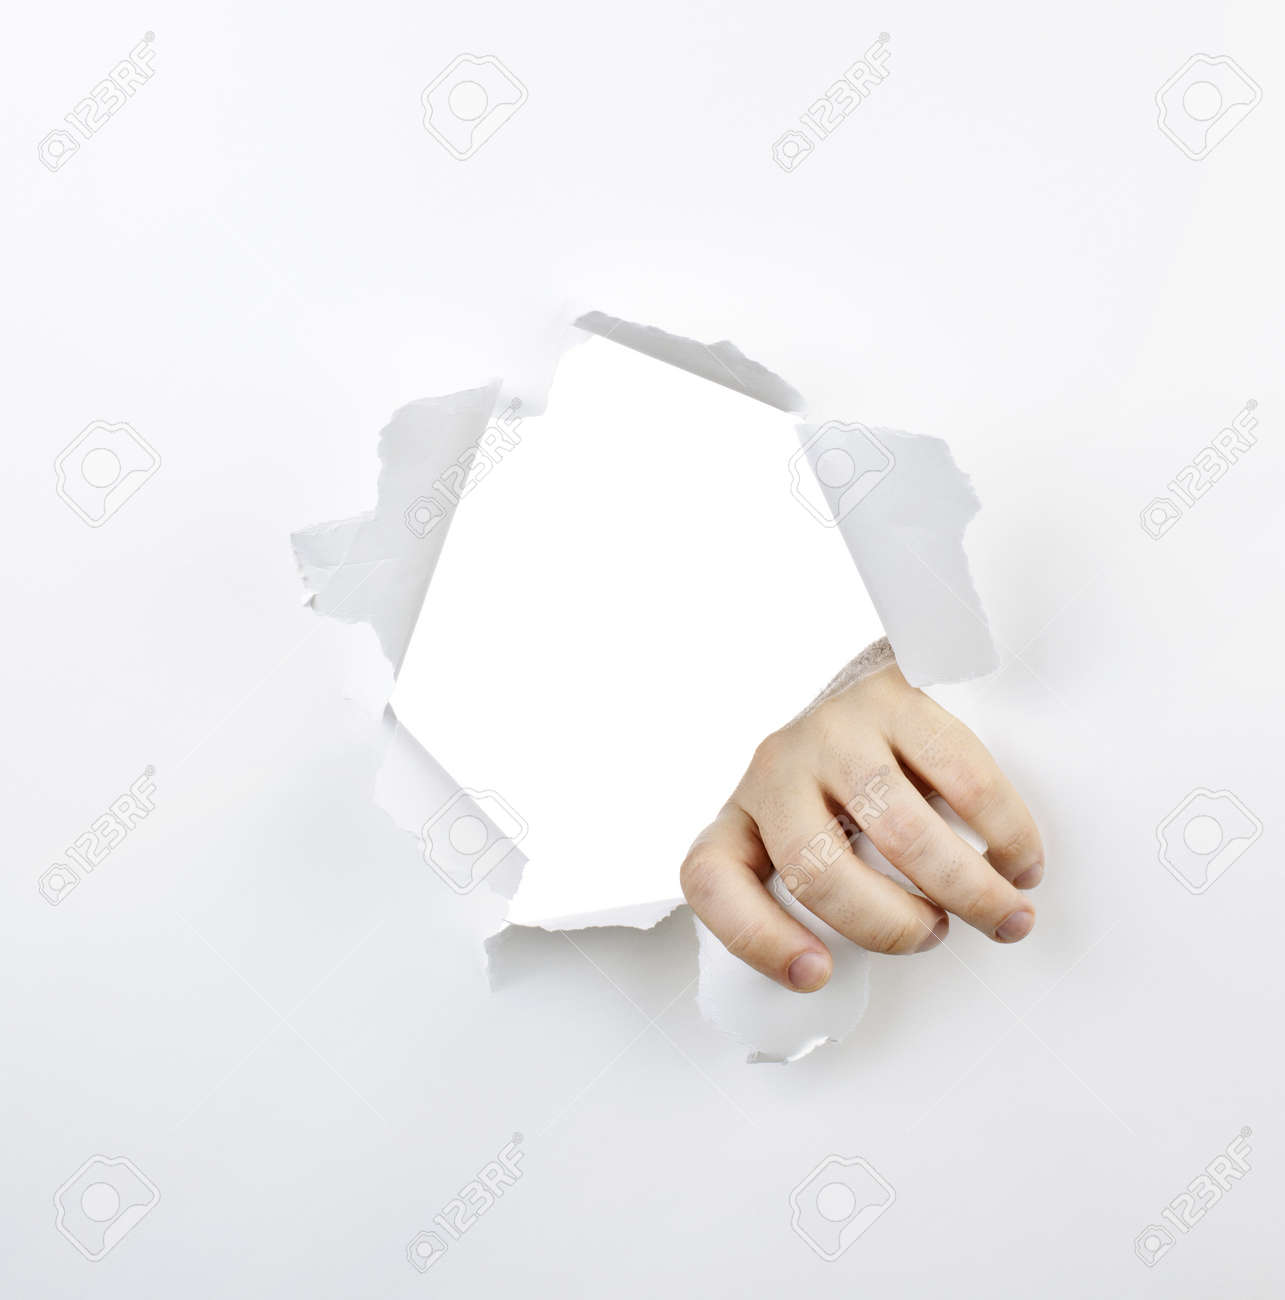 Hand ripping a hole with torn edges in white paper Stock Photo - 9865717